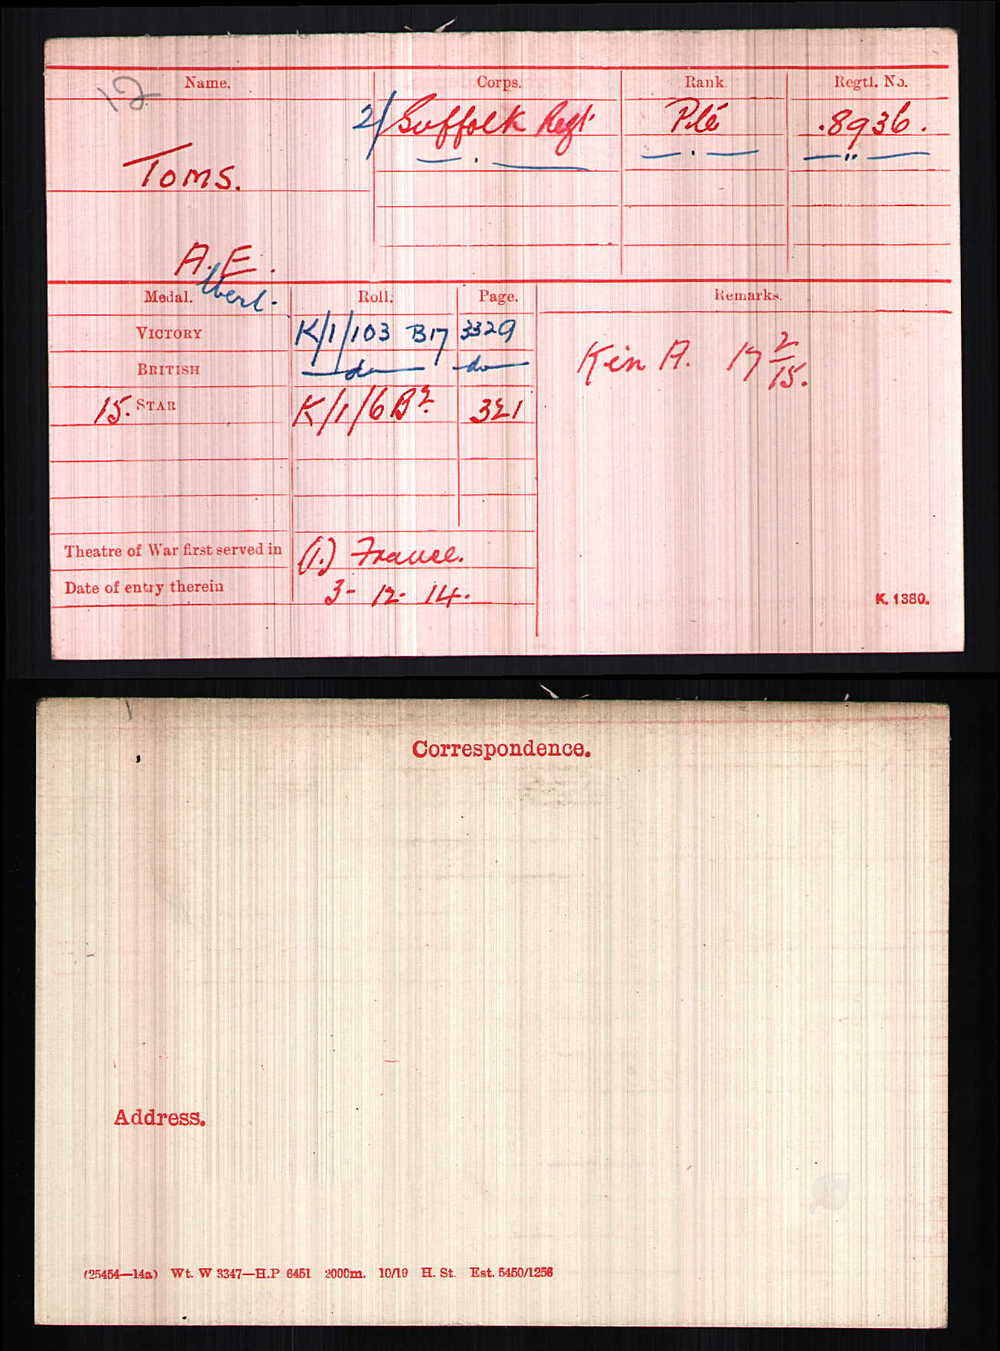 Private Toms' medal card list all three medals shown above